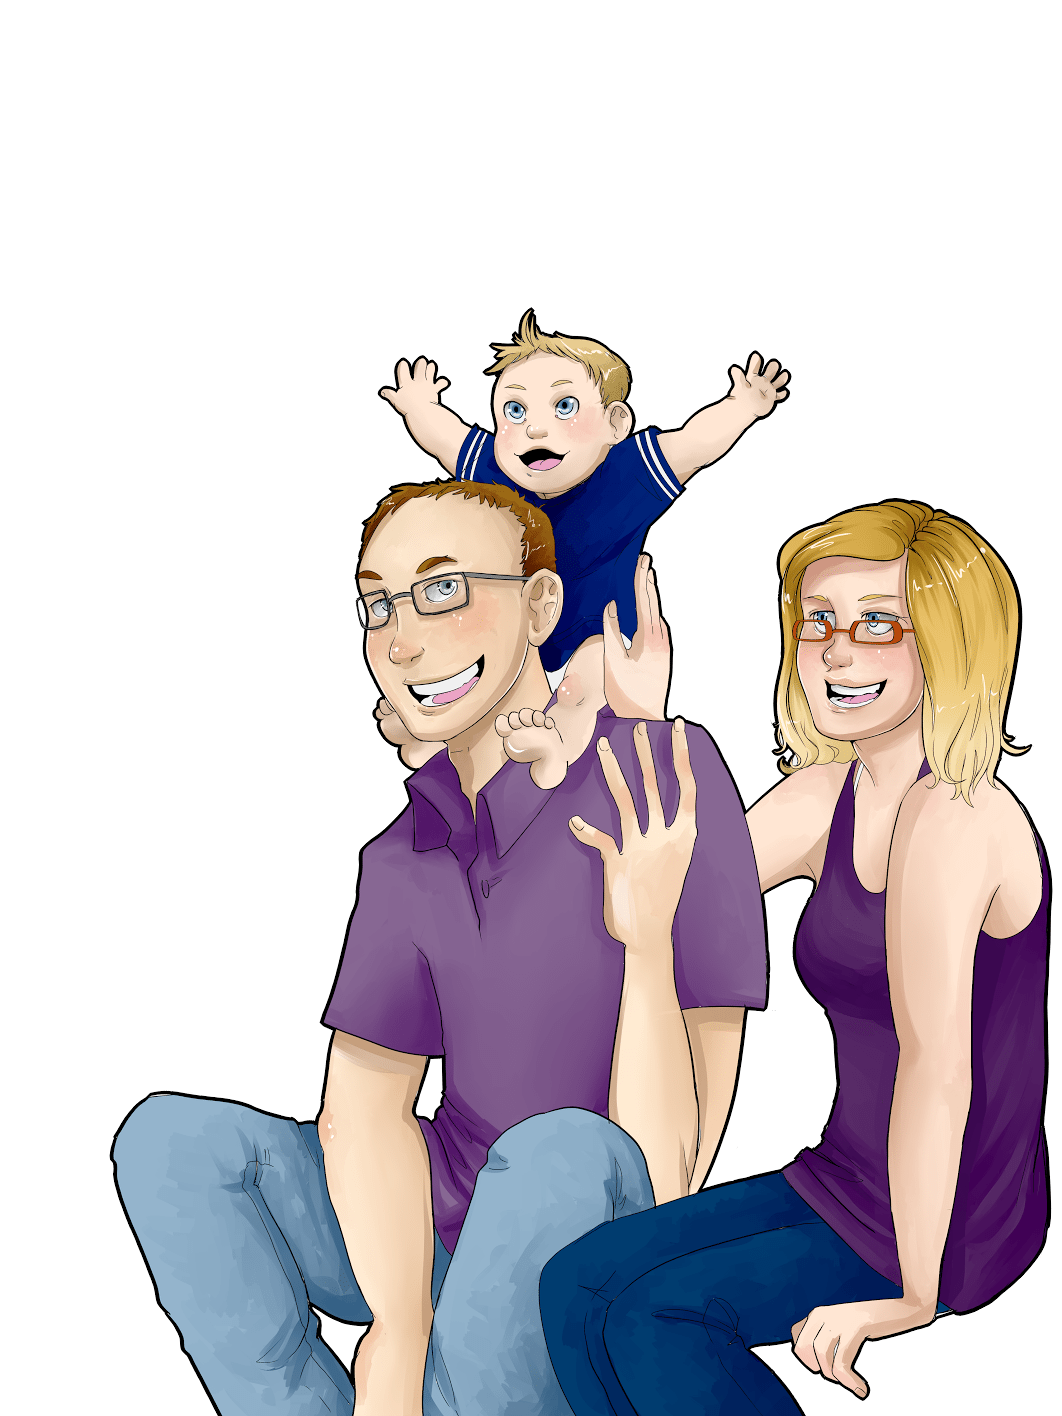 Portrait of the Klawuhn family by AruRmz via ArtCorgi